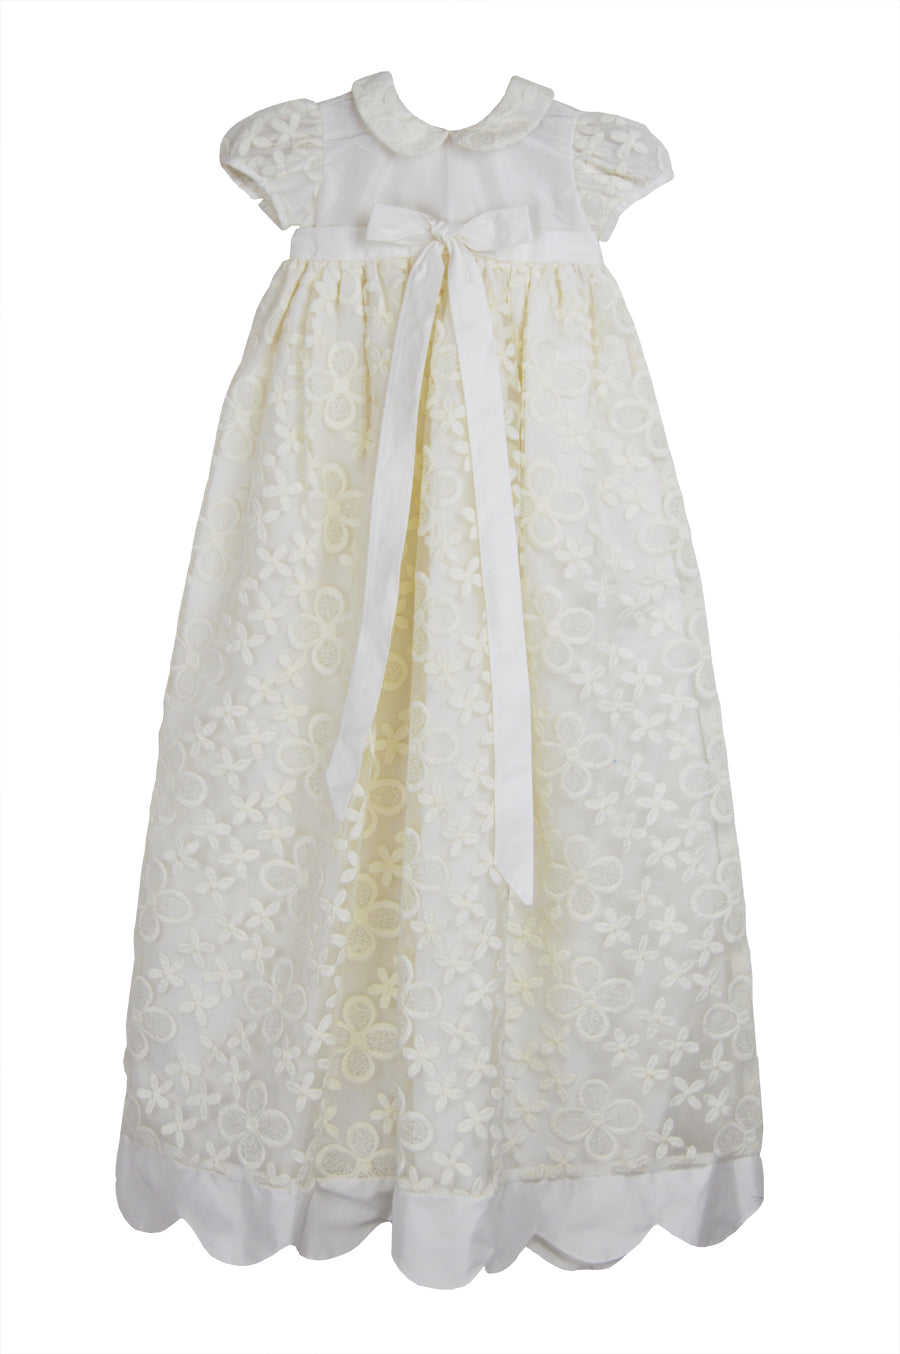 Elegant Silk Taffeta  baby girls Christening gown - Little Threads Inc. Children's Clothing